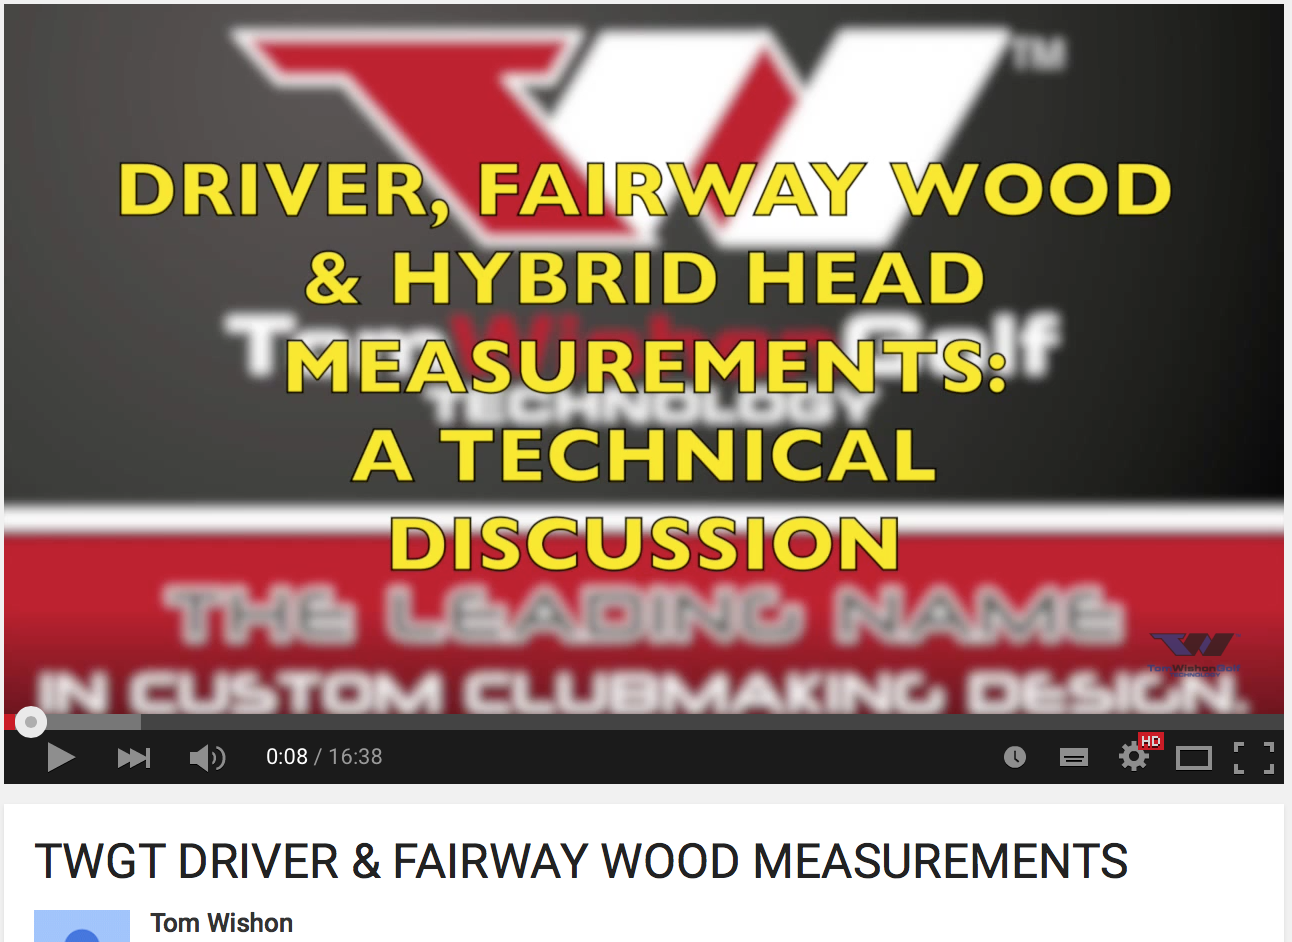 TWGT DRIVER & FAIRWAY WOOD MEASUREMENTS